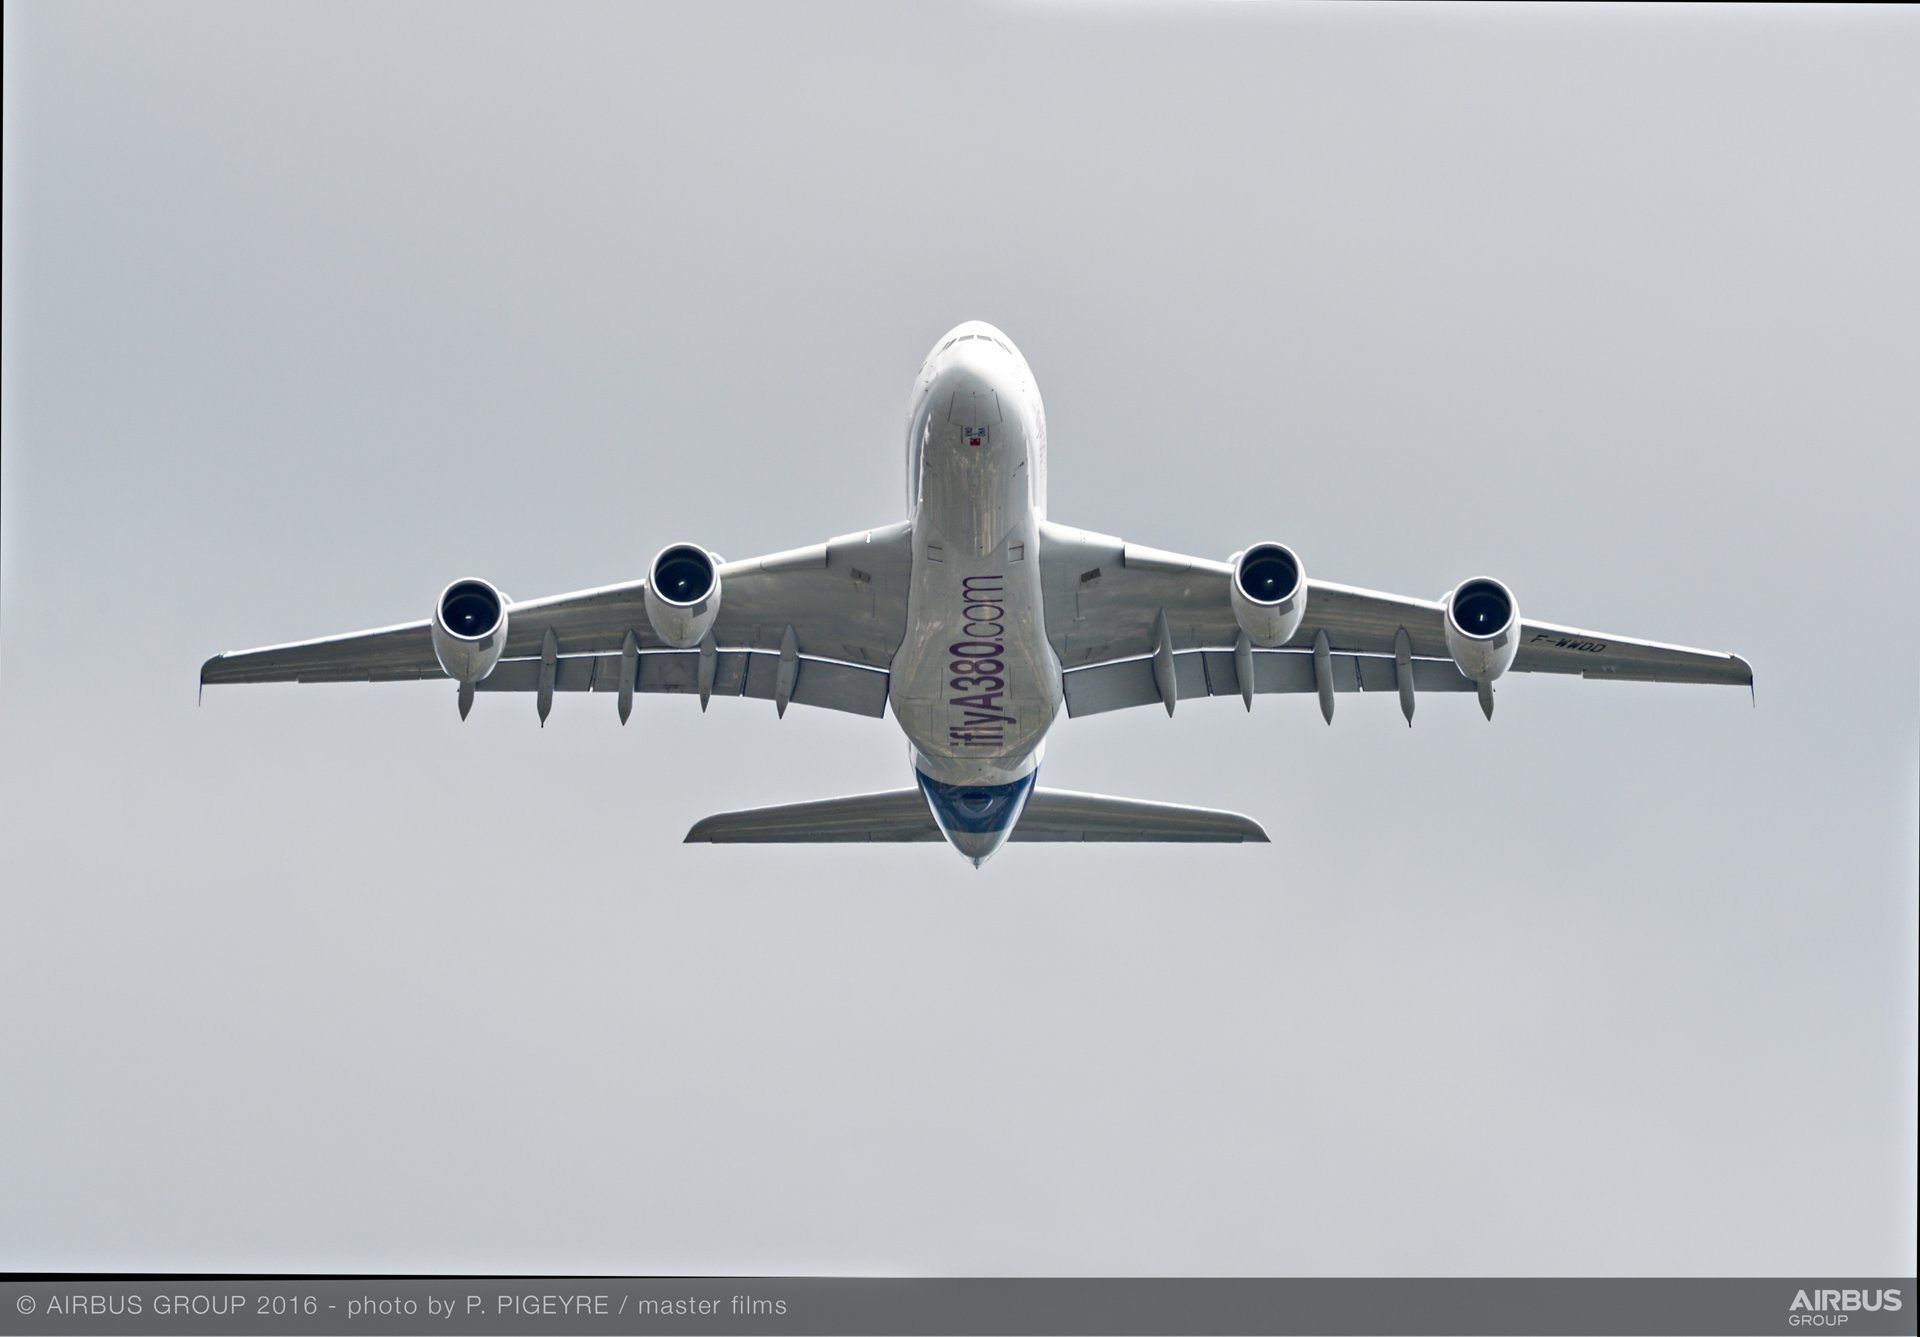 Farnborough Airshow_Day 1_A380 flying display 6